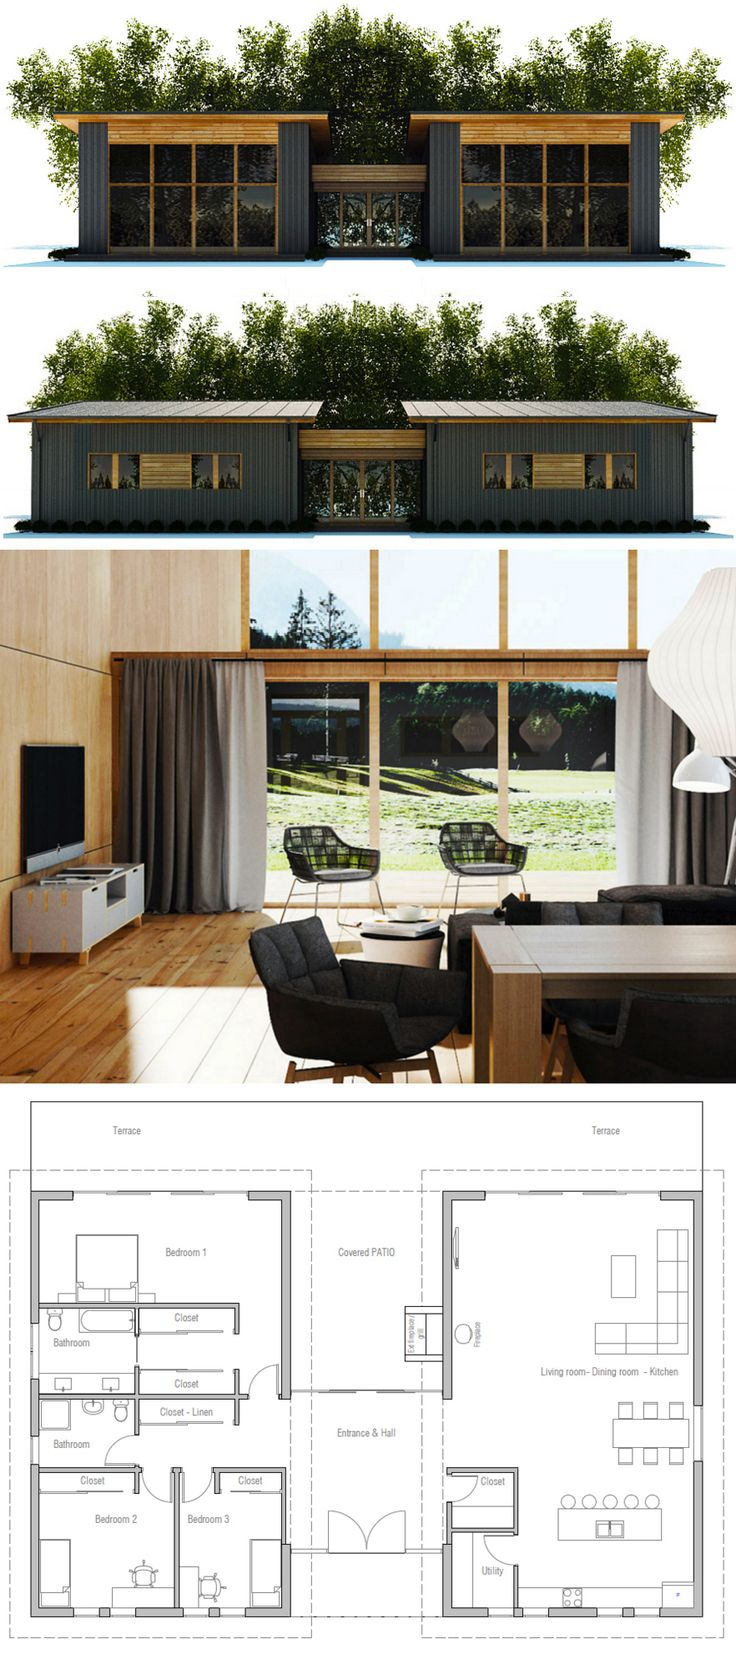 Admirable 17 Best Ideas About Small Houses On Pinterest Small Homes Tiny Largest Home Design Picture Inspirations Pitcheantrous